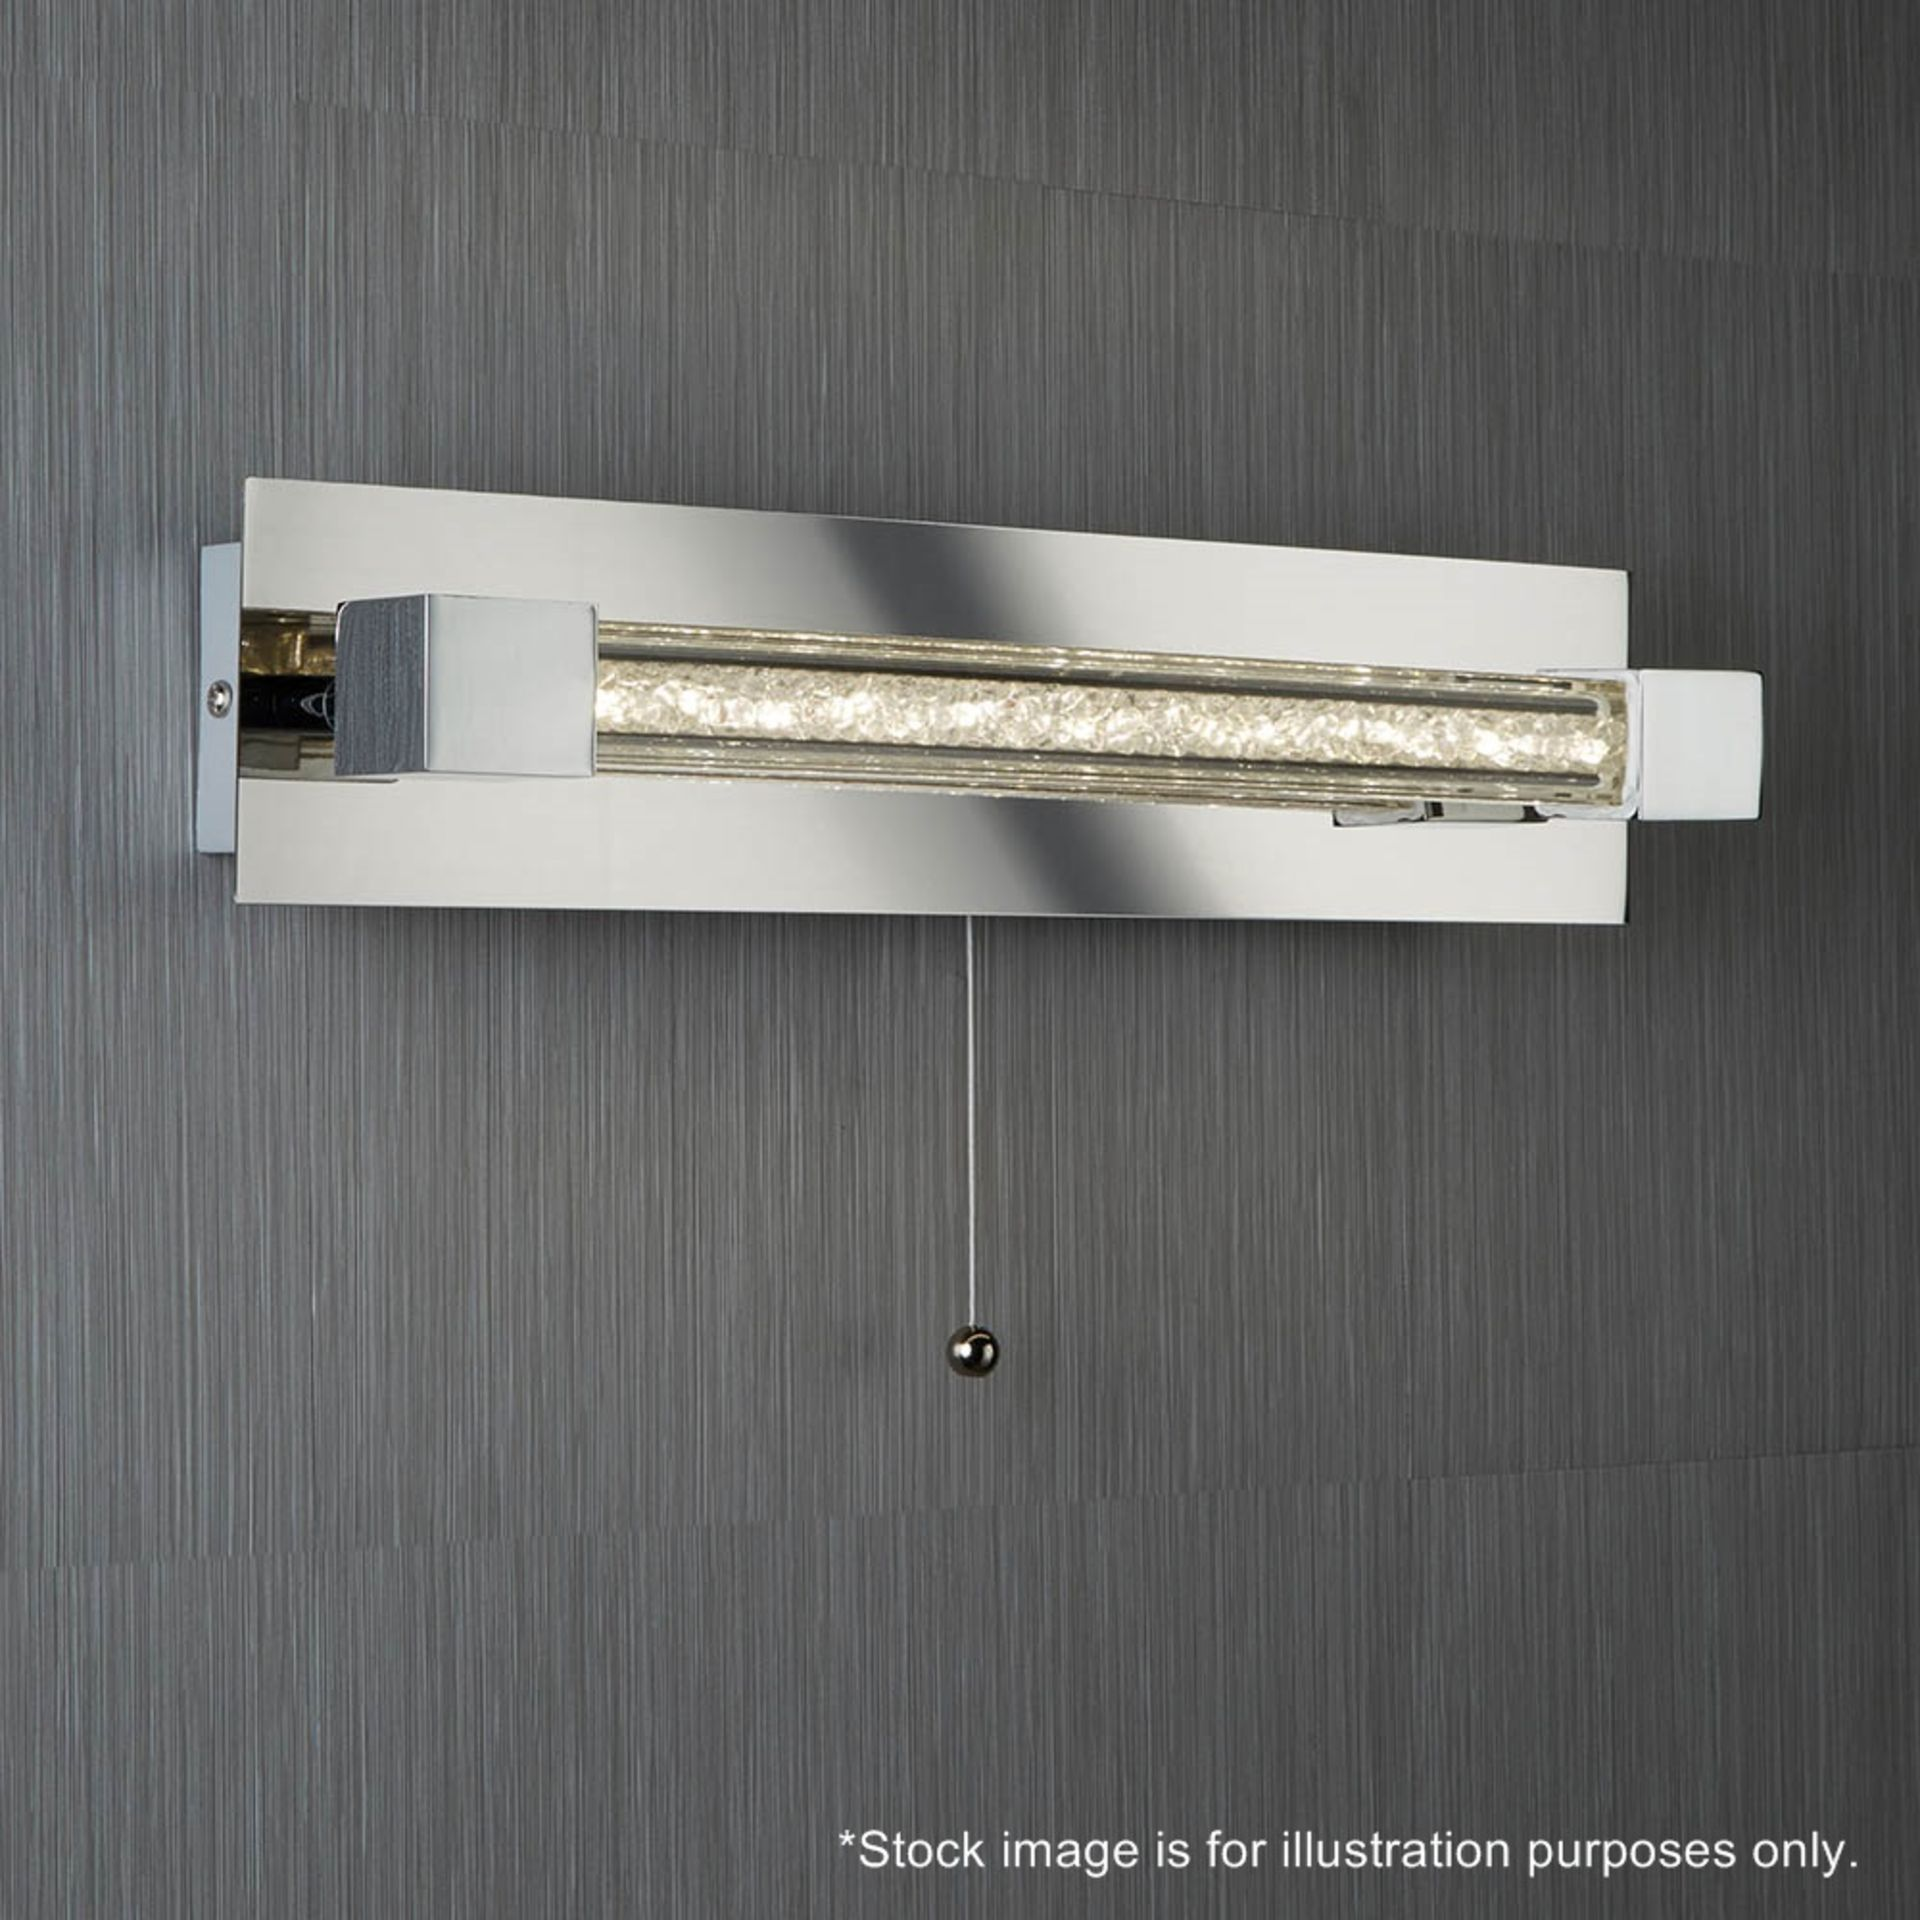 Lot 9190 - 1 x Searchlight Chrome LED Bathroom / Kitchen Wall Light with Clear Crystal Glass Bar - IP44- Boxed